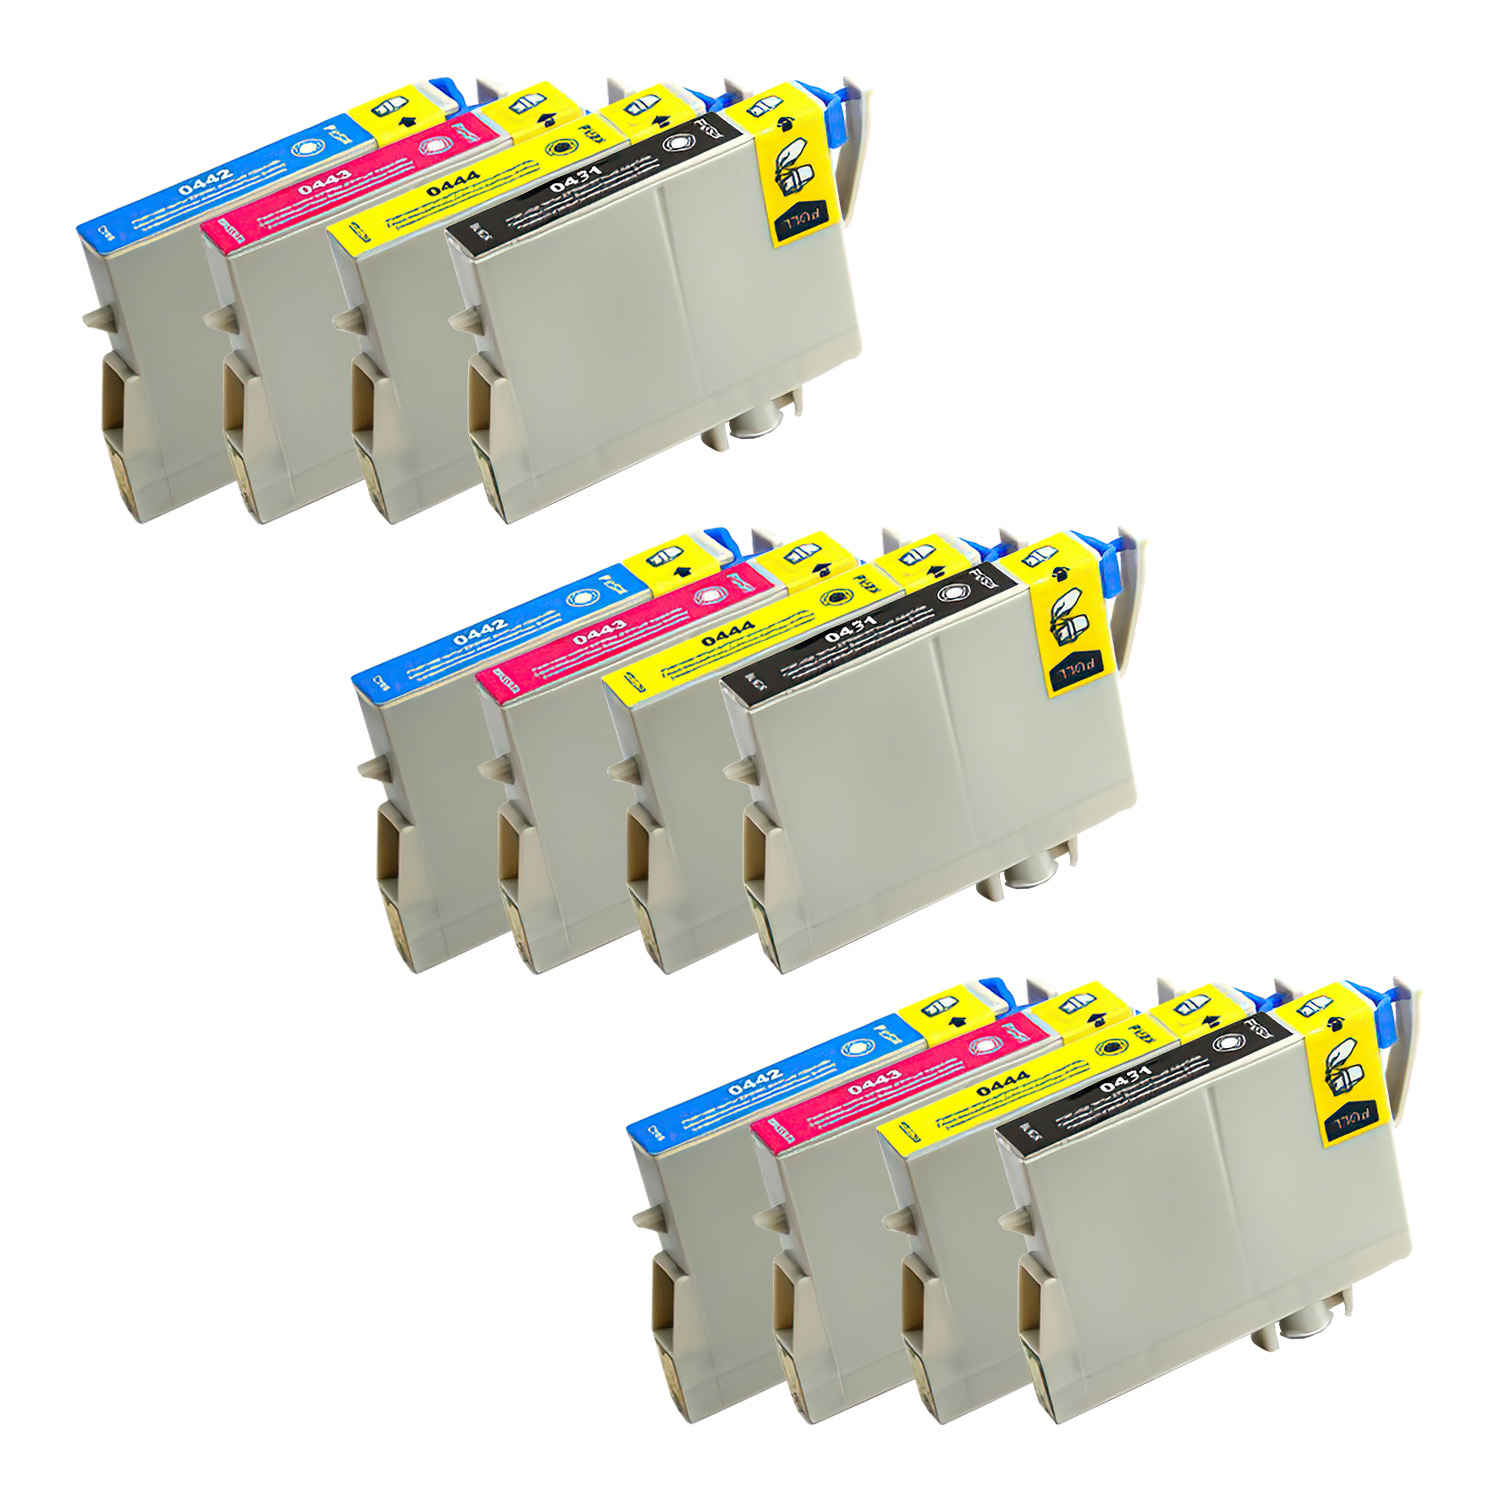 Remanufactured Epson 44-43 Inkjet High Capacity Pack - 12 Cartridges